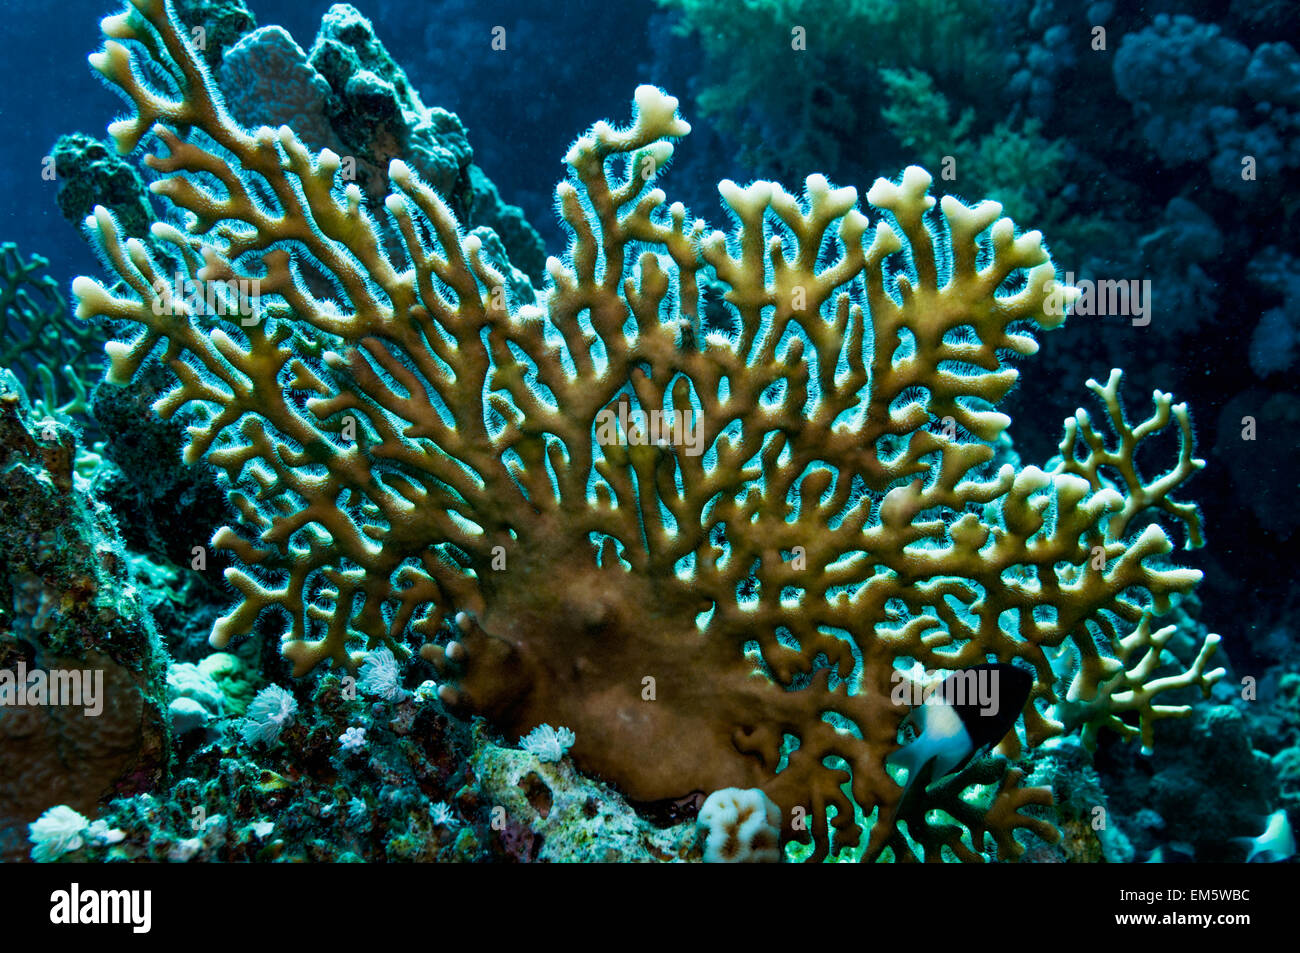 Fire coral (Millepora dichotoma). - Stock Image